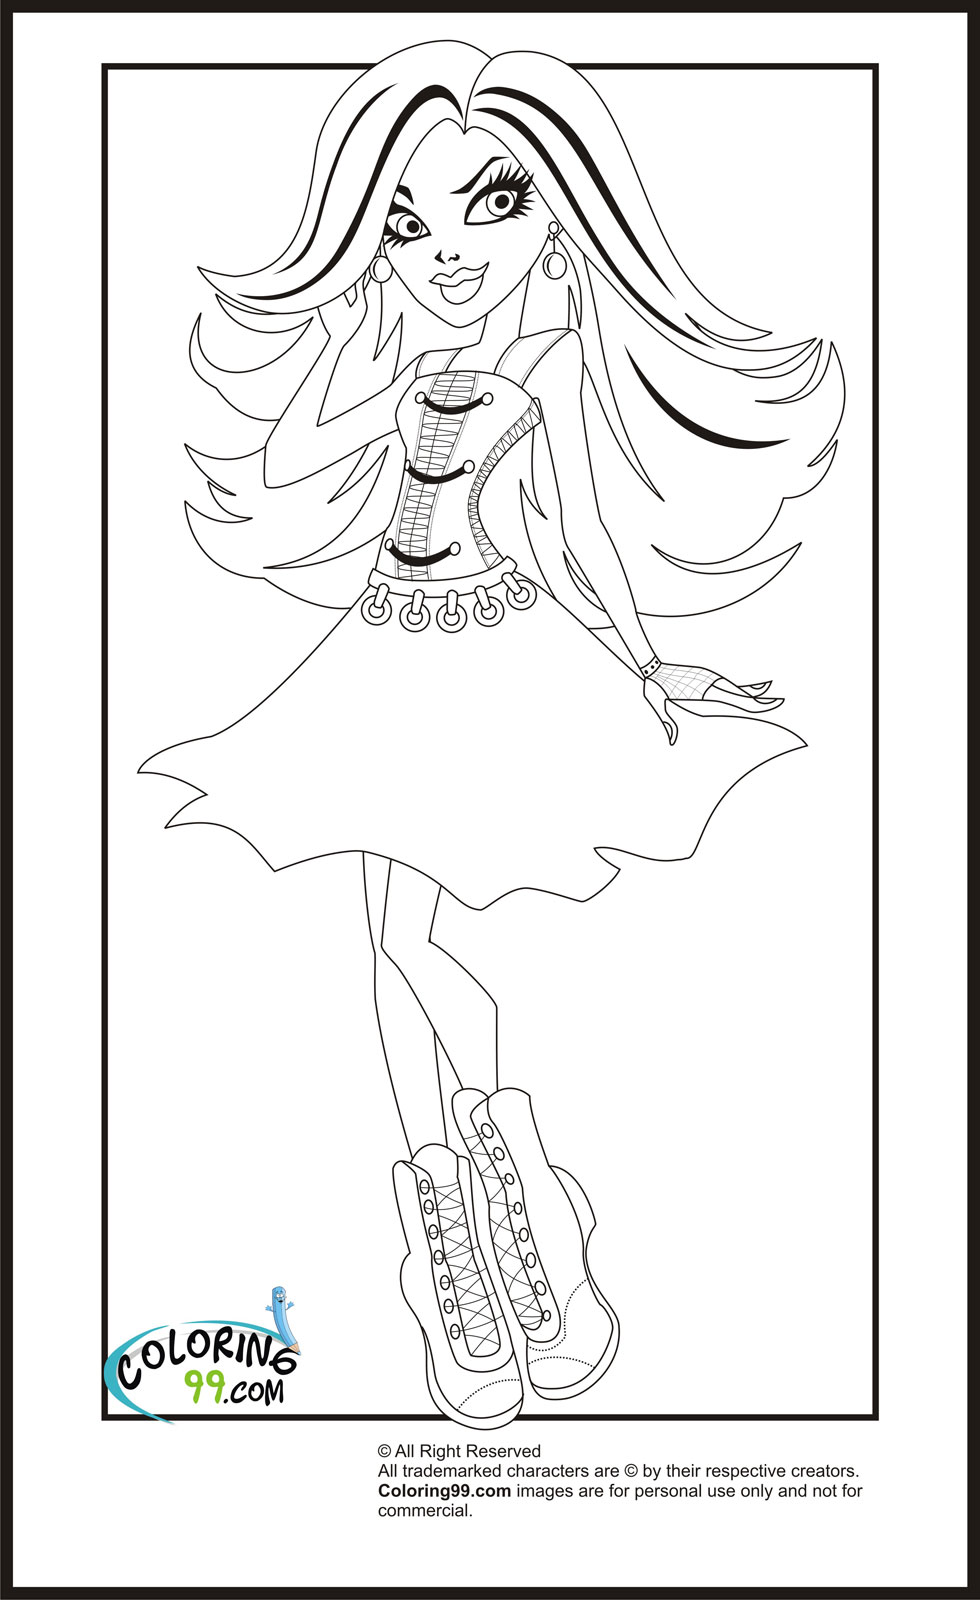 Monster High Spectra Vondergeist Coloring Pages | Team colors